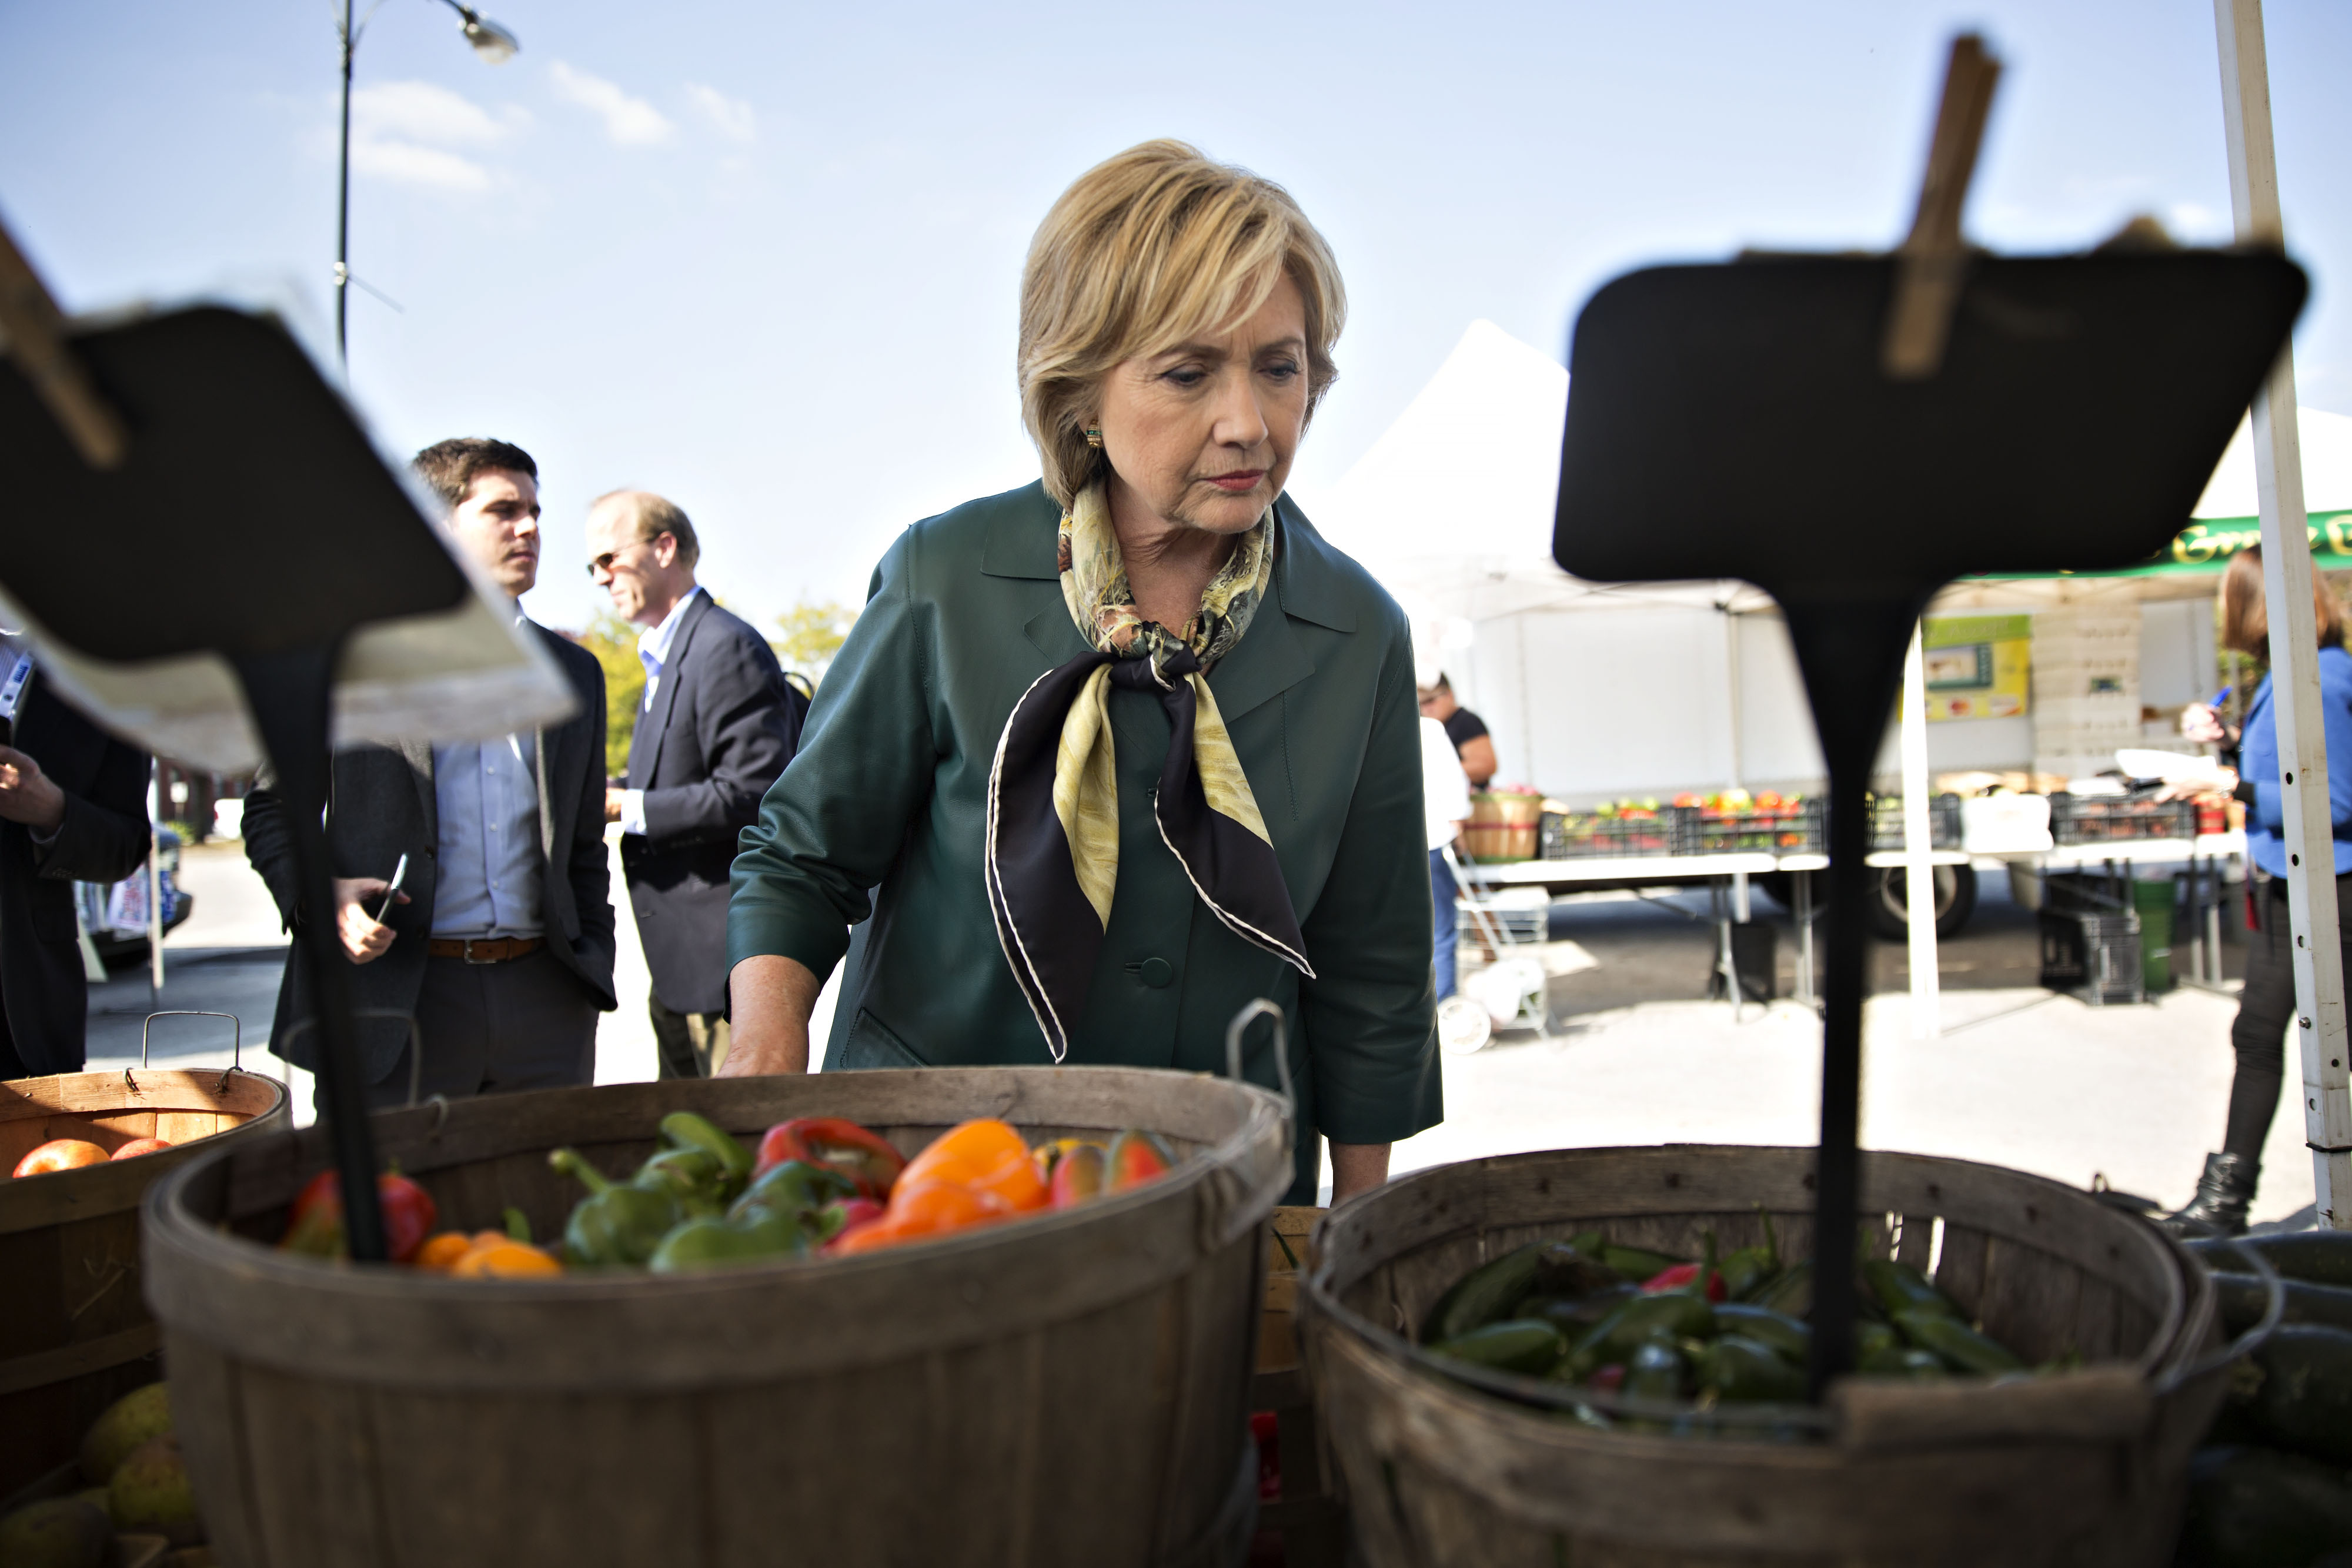 Hillary Clinton, former Secretary of State and 2016 Democratic presidential candidate, views a selection of peppers at a farmers market in Davenport, Iowa on Oct. 6, 2015.